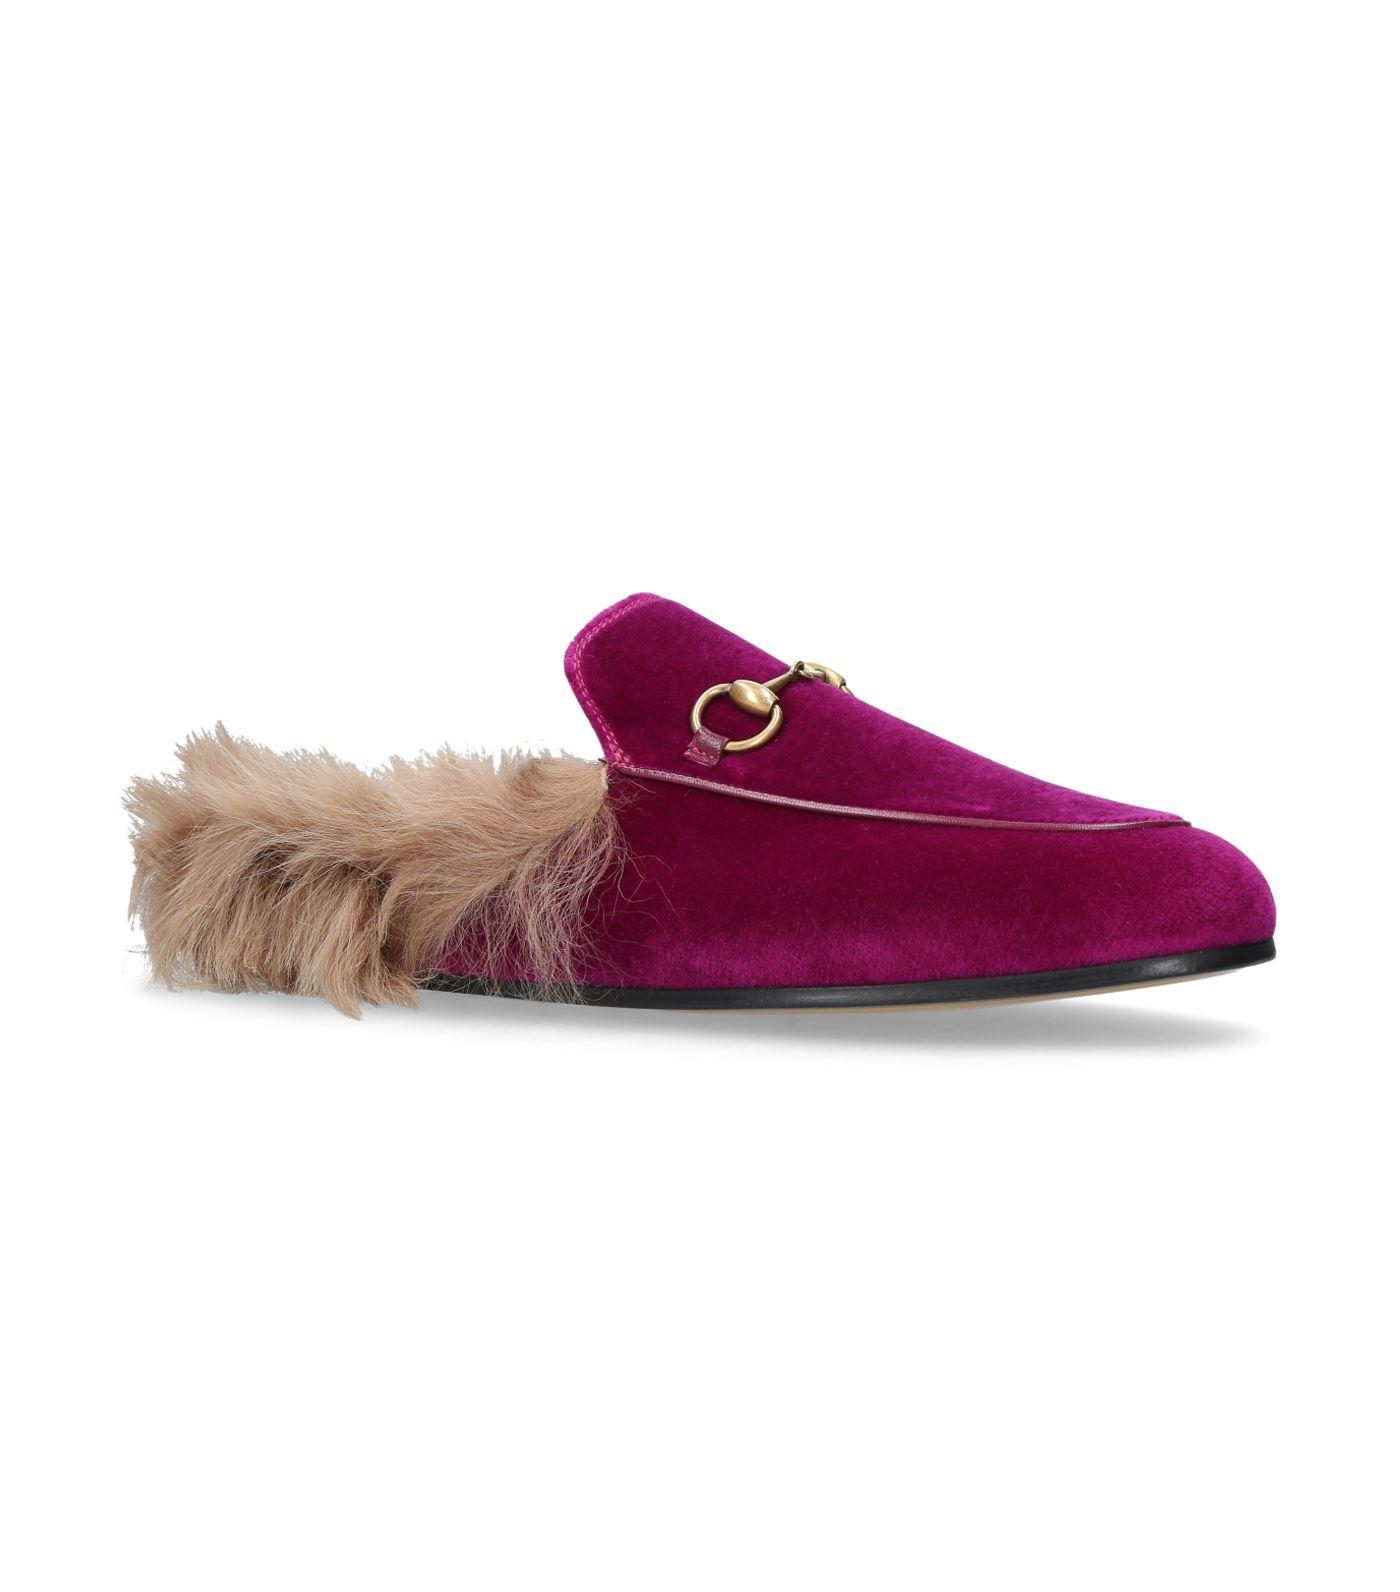 87777f1f4479 Gucci Velvet Princetown Slippers In Pink